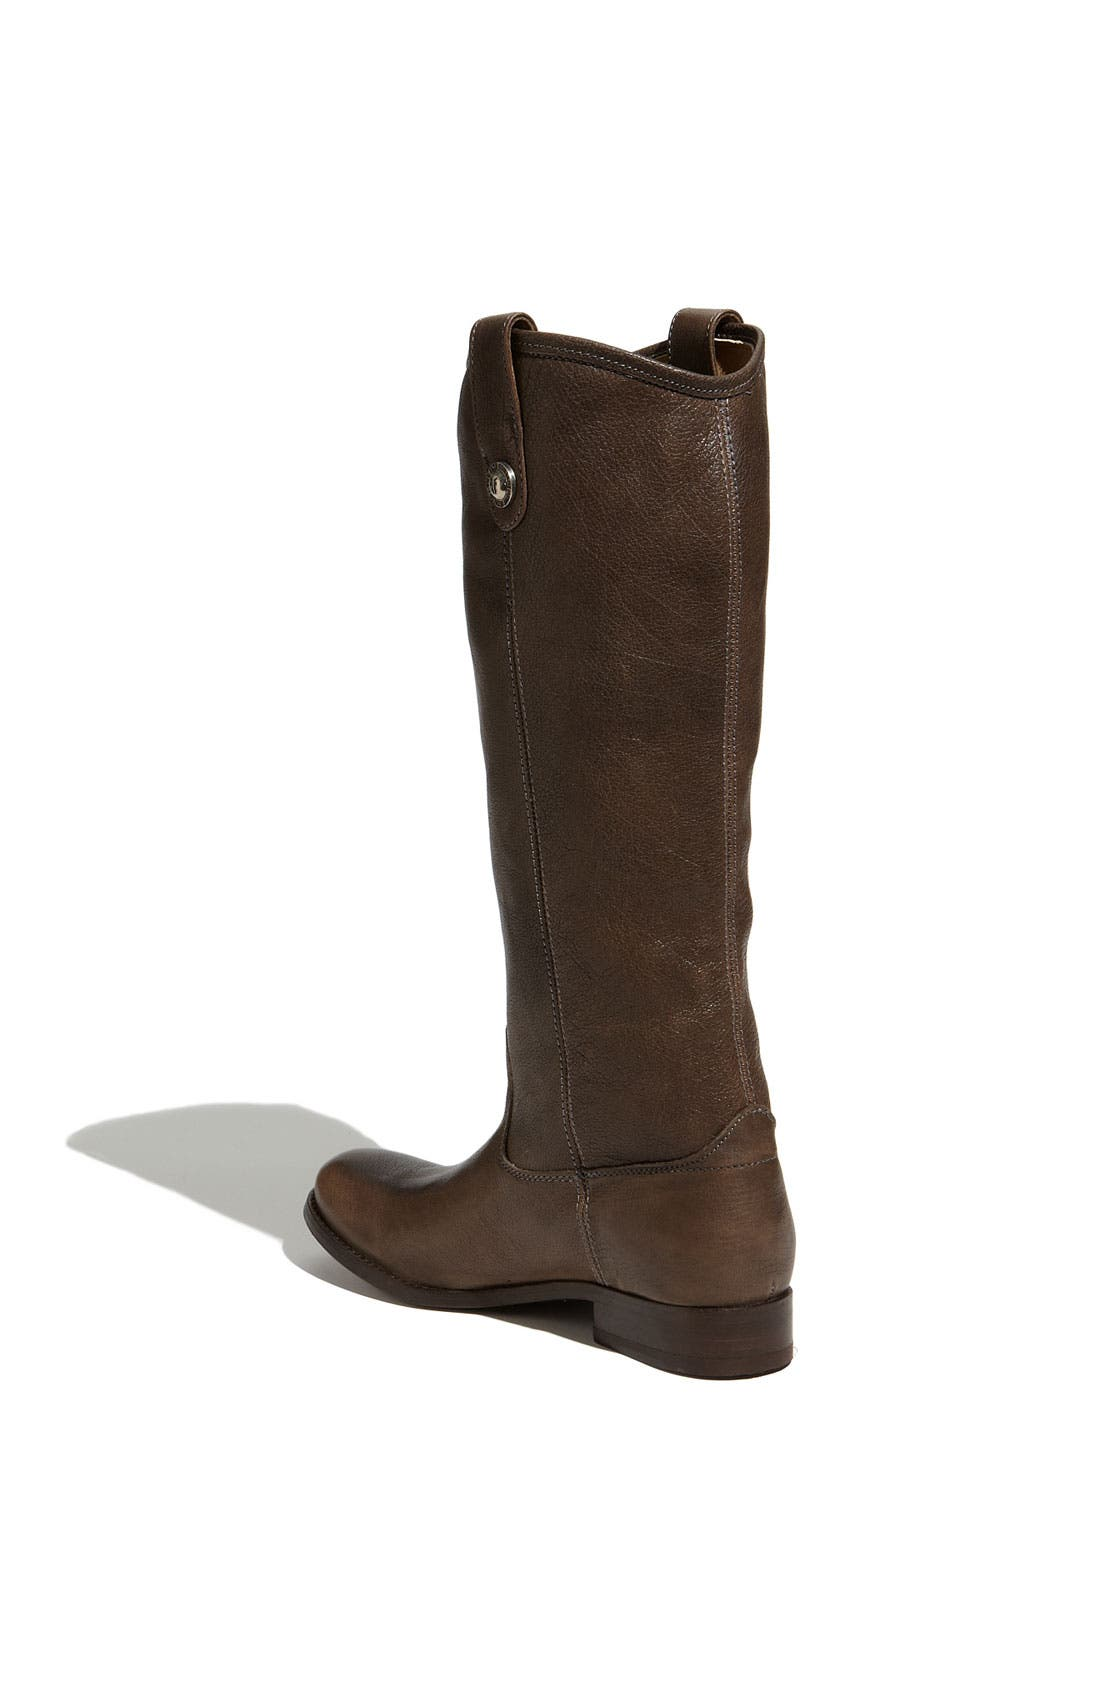 'Melissa Button' Leather Riding Boot,                             Alternate thumbnail 130, color,